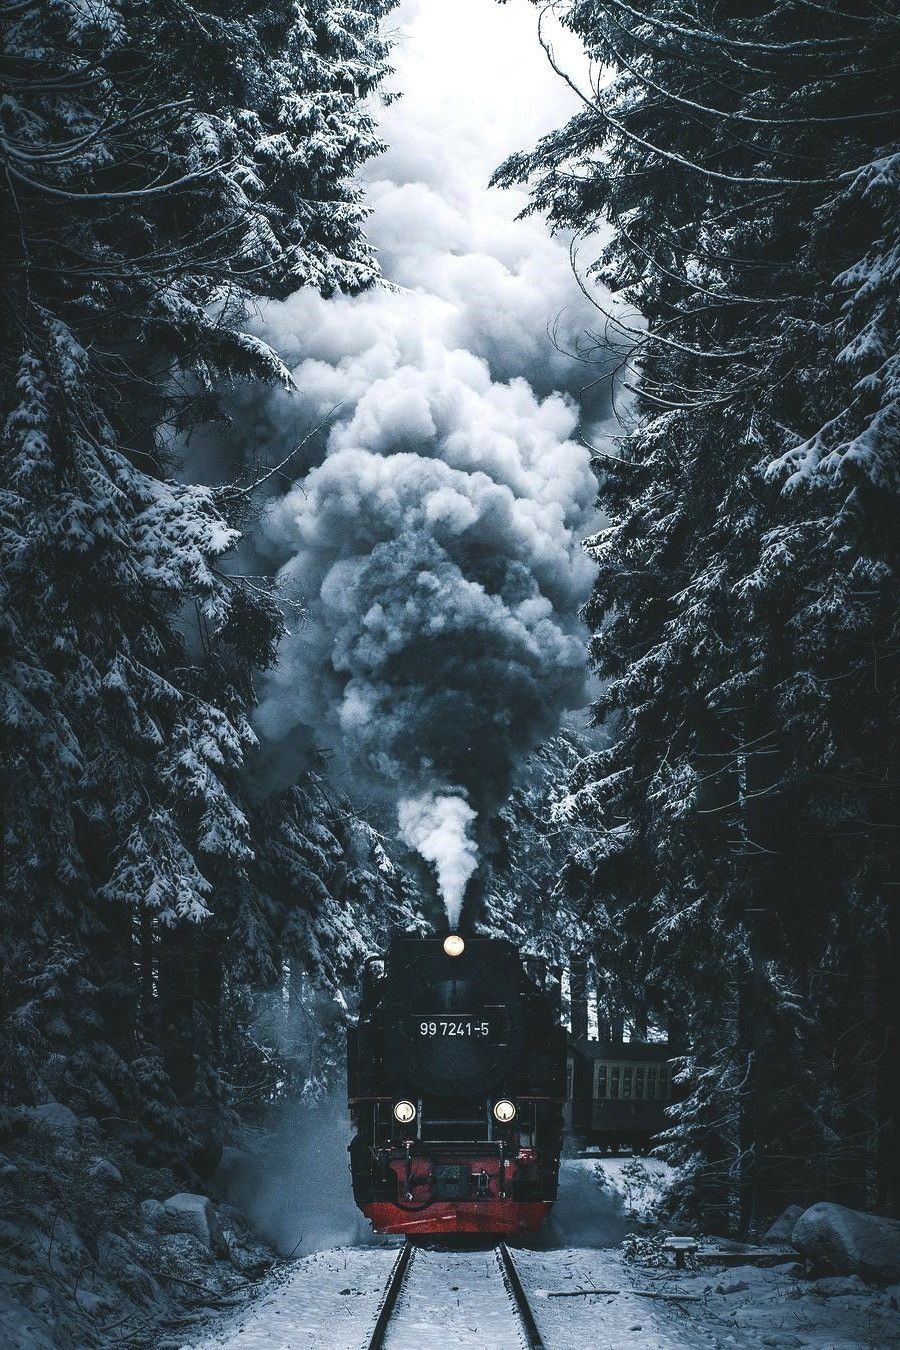 Pin By Caue Sarmento On Beauty Scenery Iphone Wallpaper Winter Train Wallpaper Winter Wallpaper